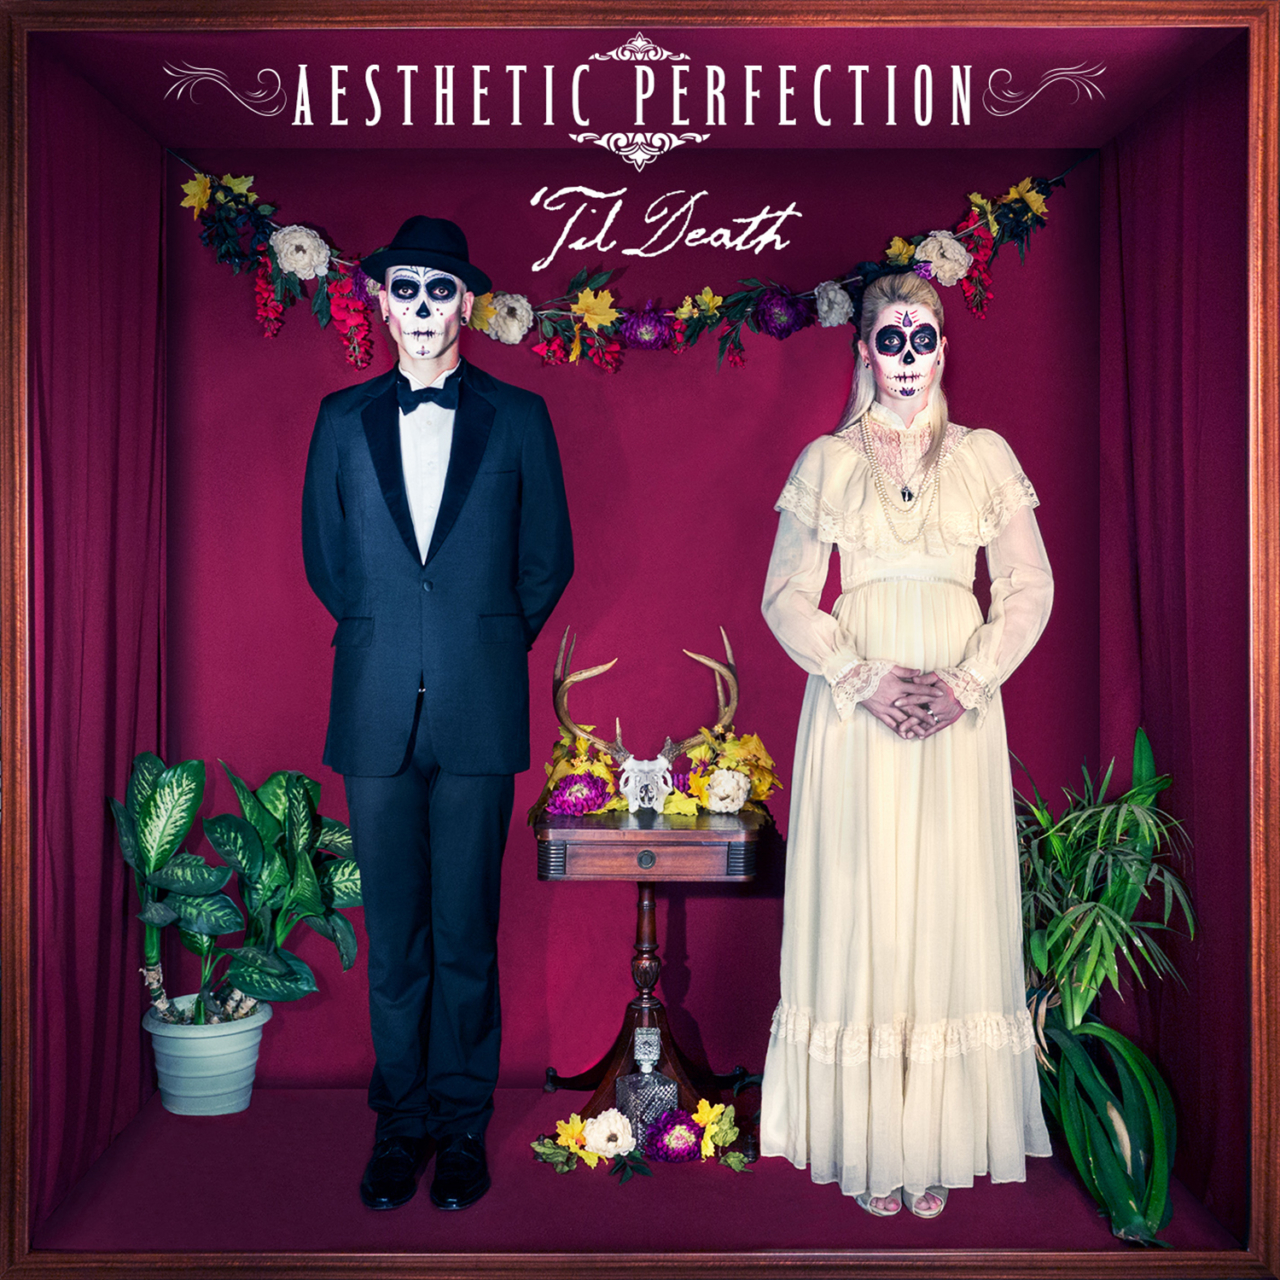 Aesthetic Perfection - Til Death